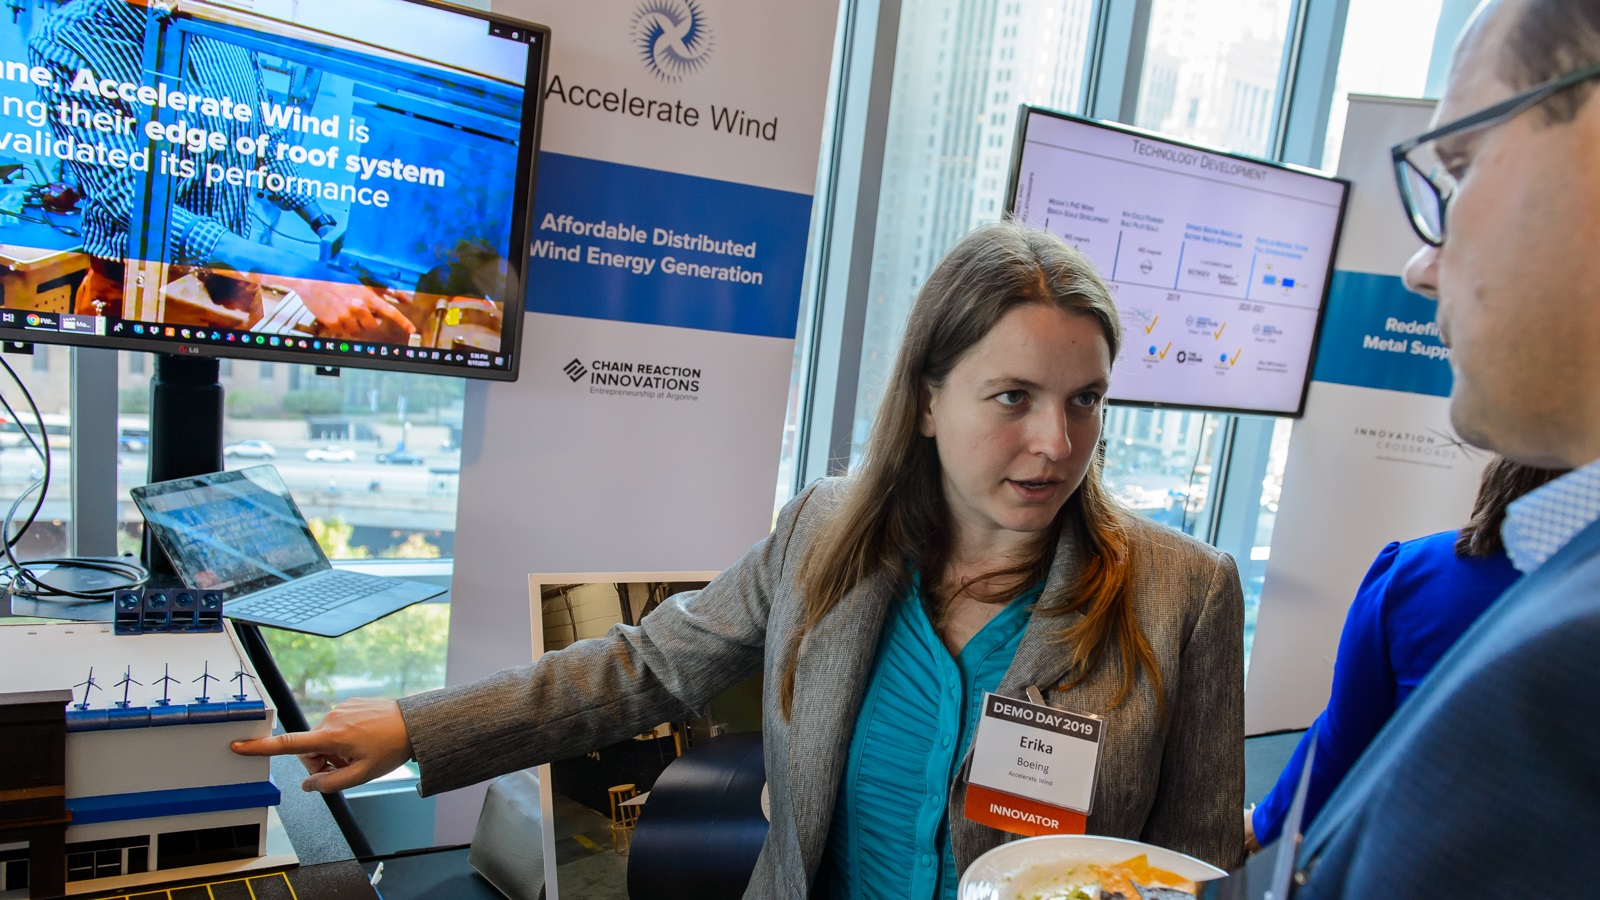 Erika Boeing, CEO of Accelerate Wind, shows her distributed wind rooftop-based generation platform at Demo Day. (Image by Argonne National Laboratory.)